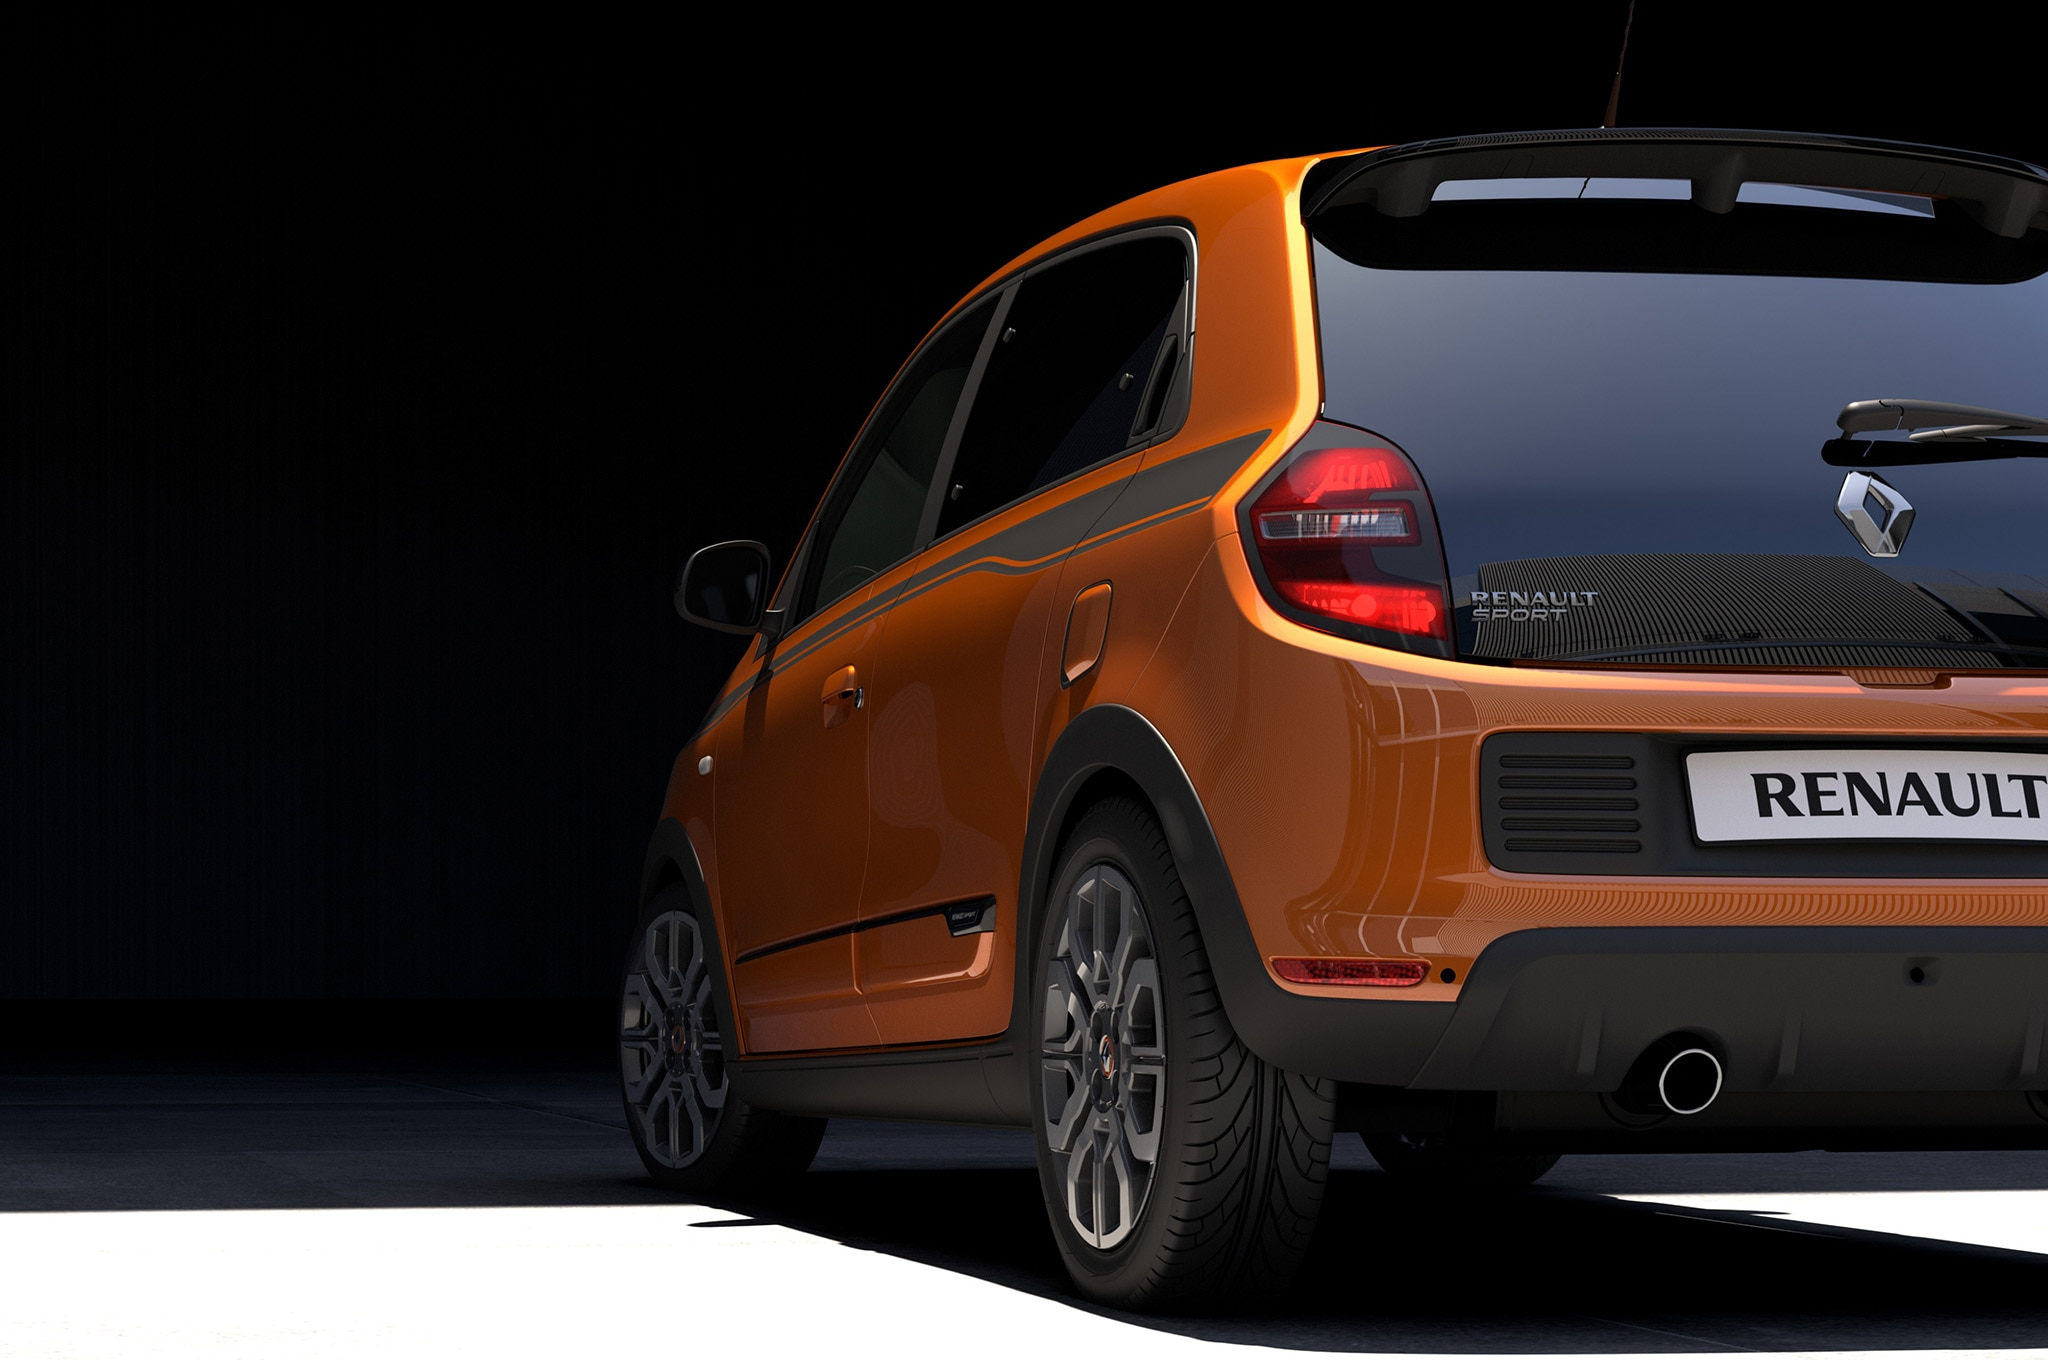 renault reveals the twingo gt the coolest city car we ve ever seen automobile magazine. Black Bedroom Furniture Sets. Home Design Ideas